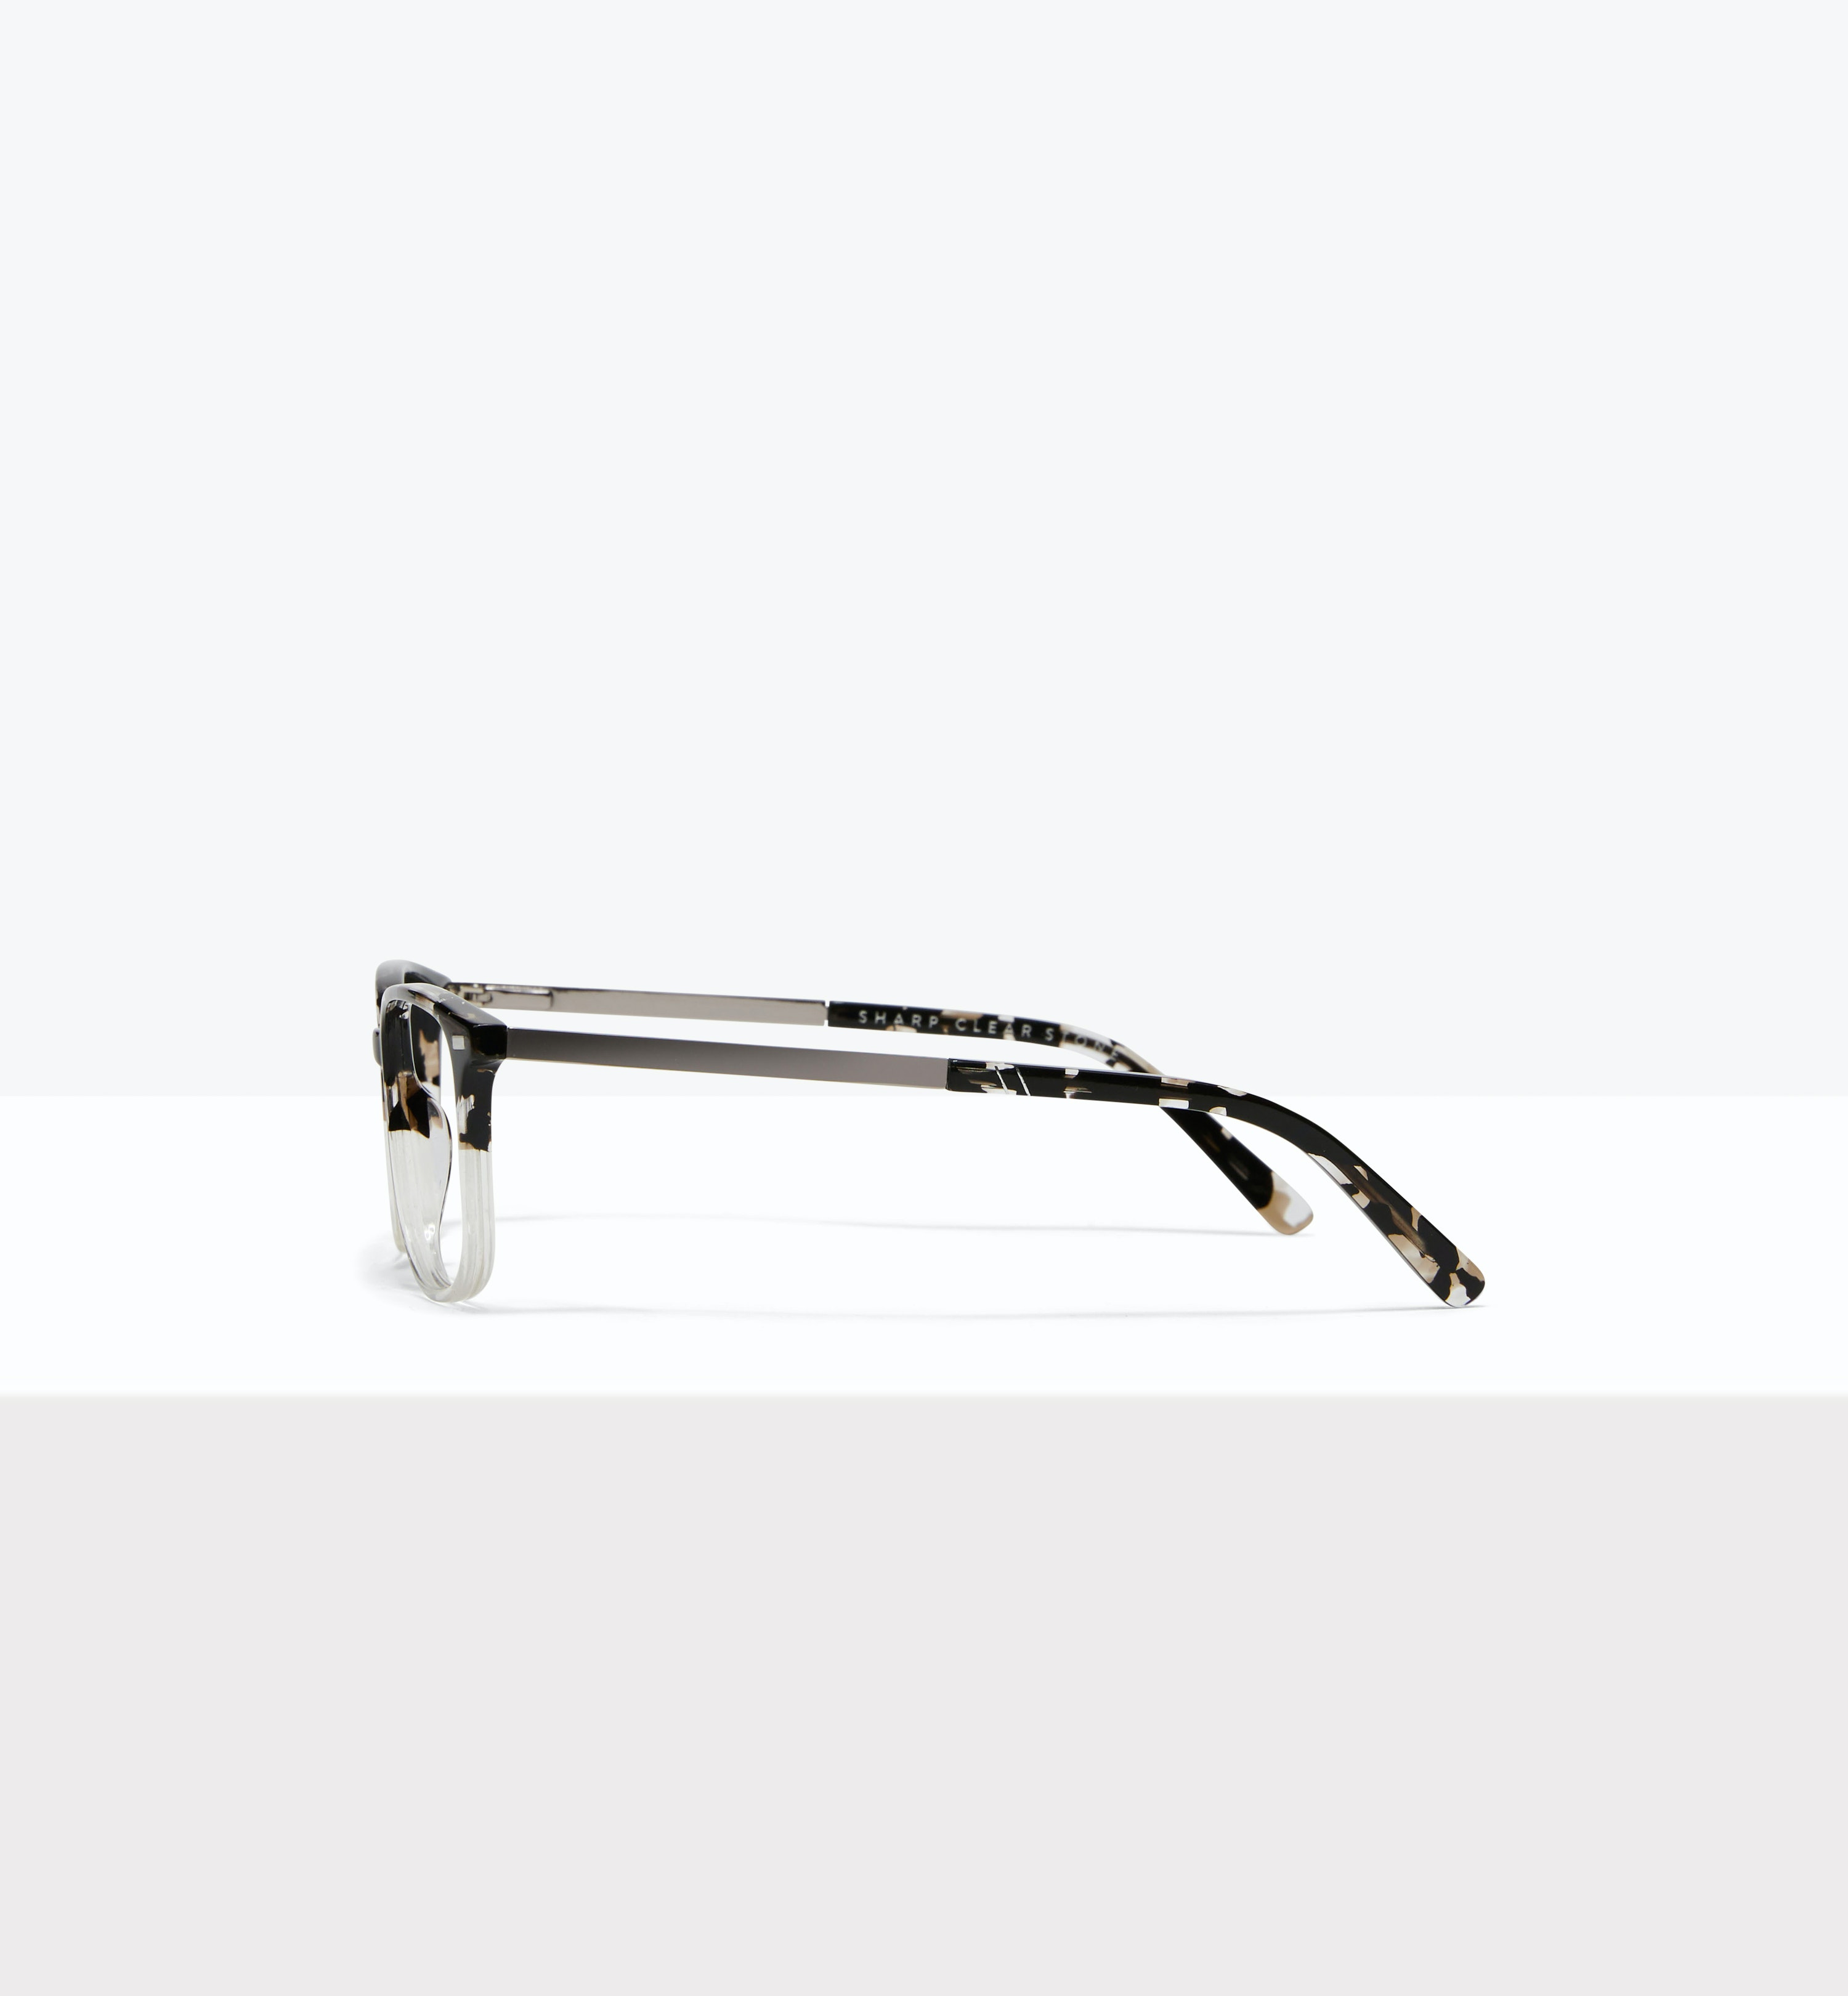 Affordable Fashion Glasses Rectangle Eyeglasses Men Sharp Clear Stone Side